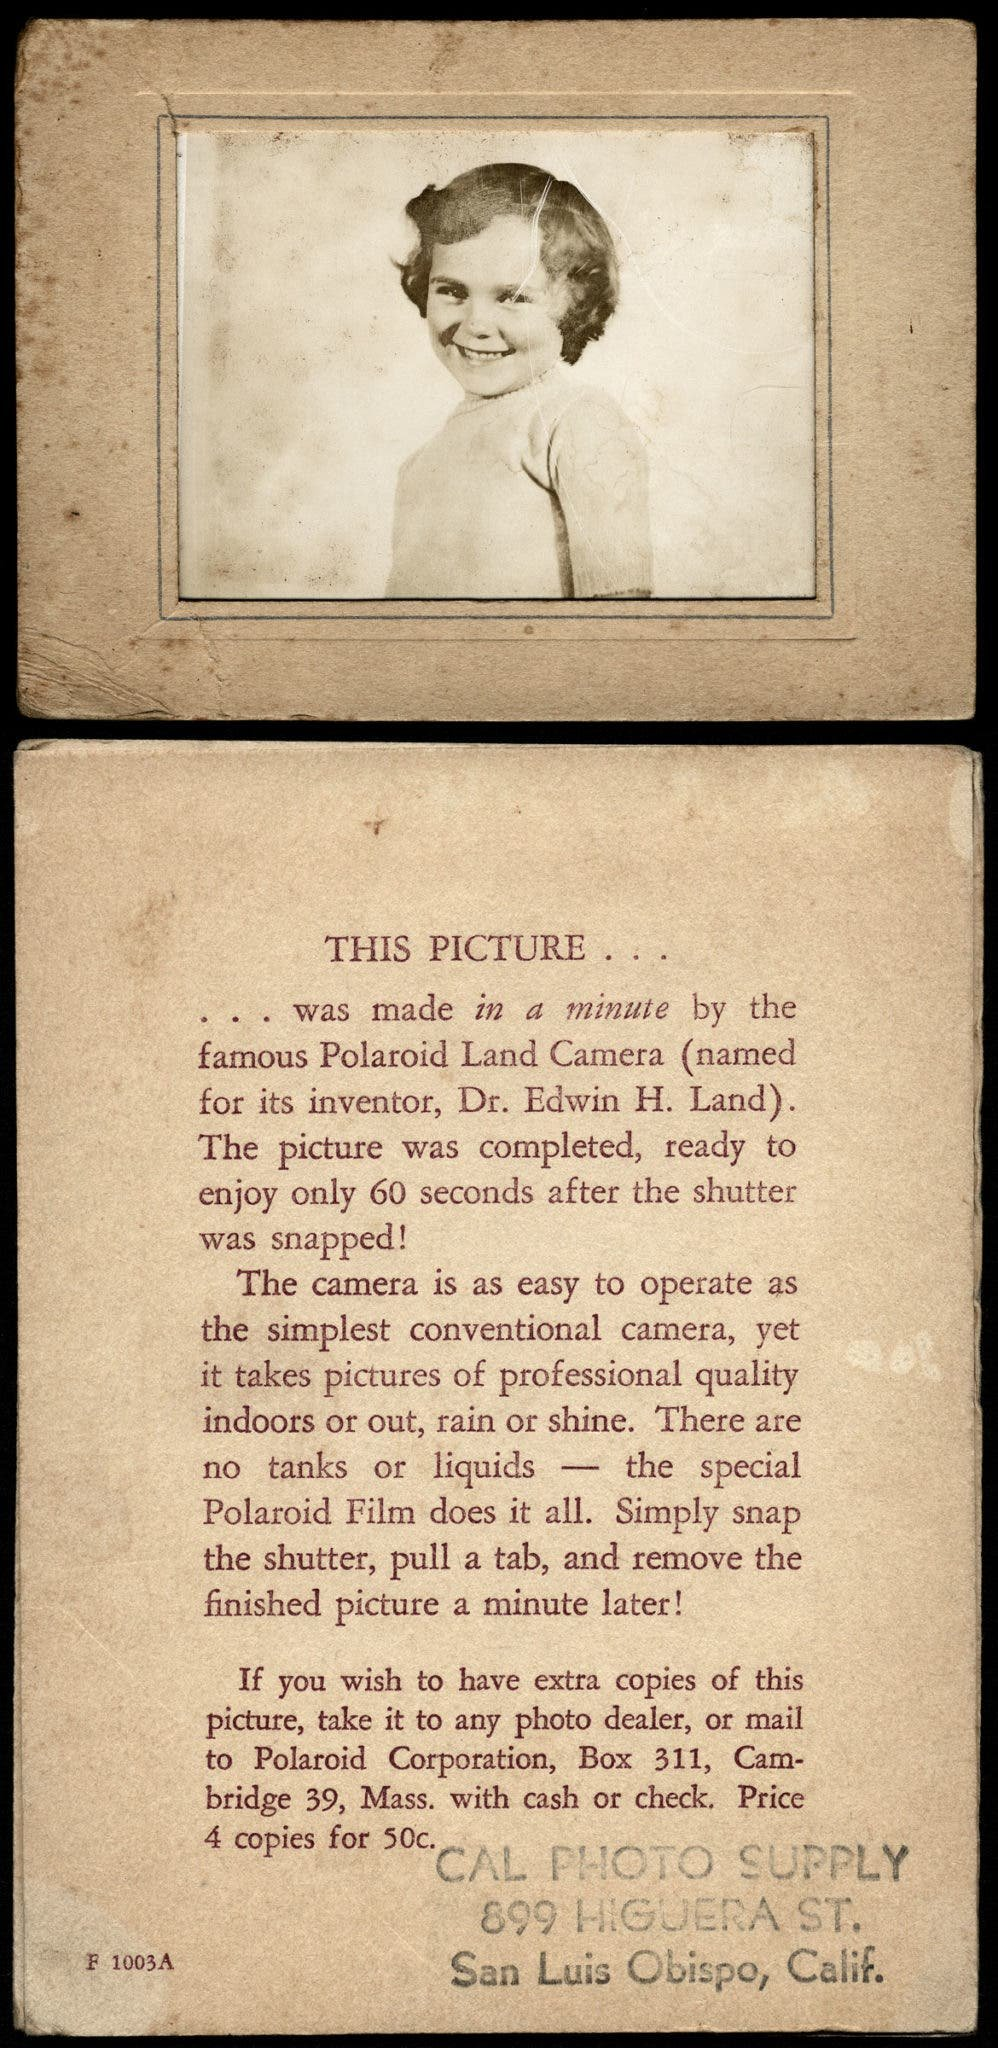 This is How the Polaroid Was First Explained When It Was a New Concept